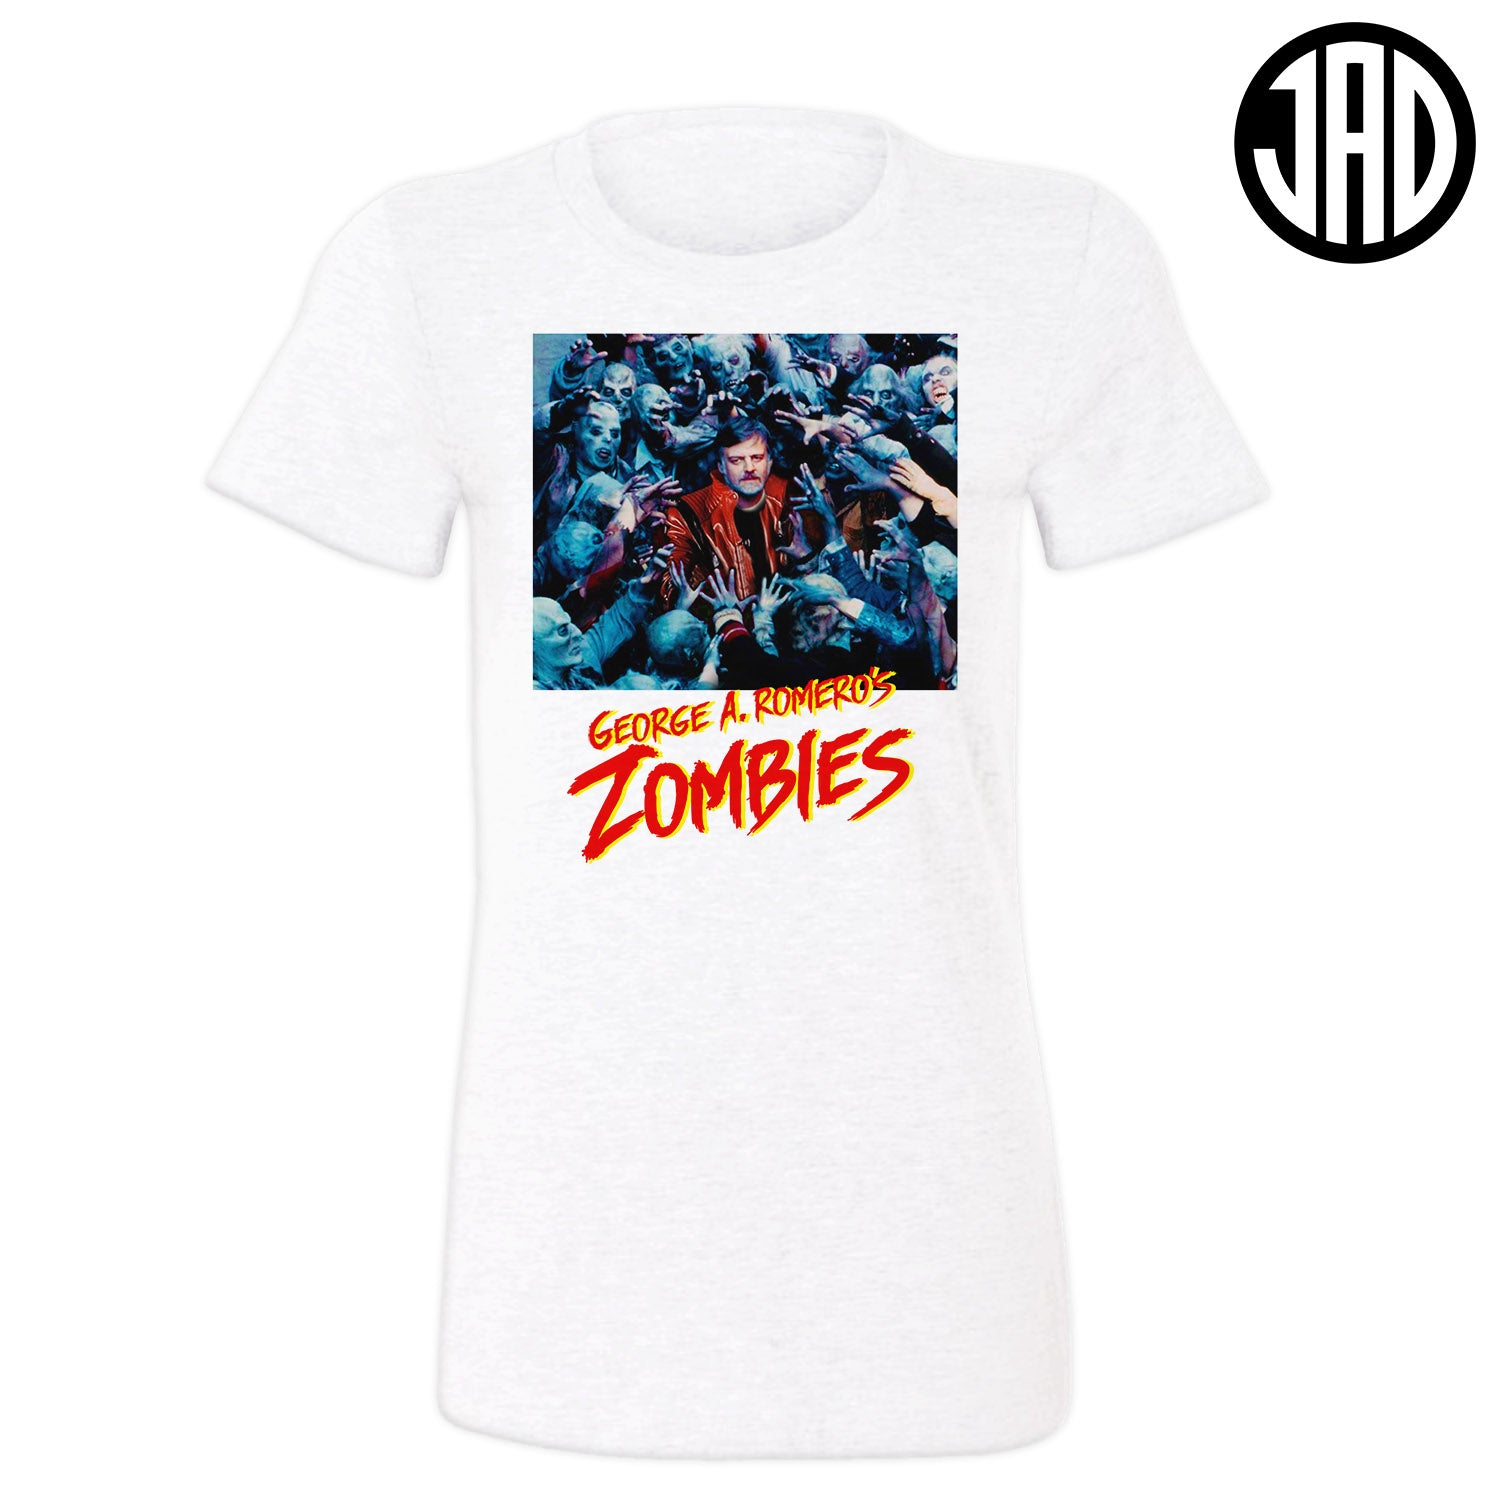 GAR Zombies - Women's Tee